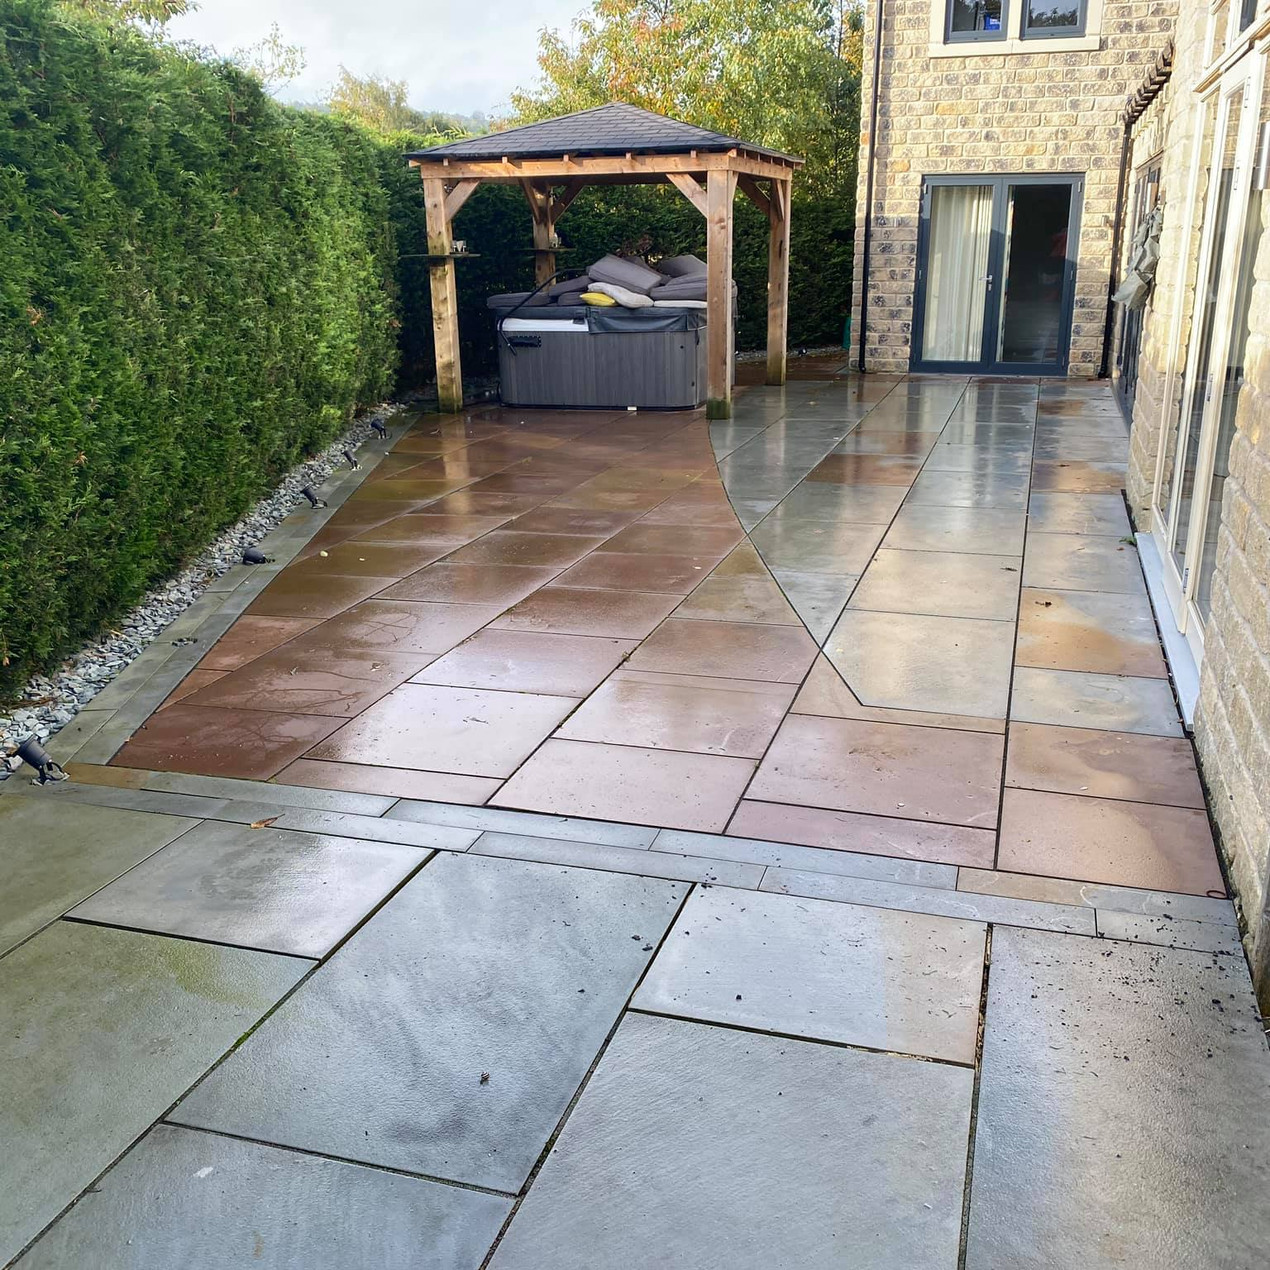 Domestic Driveway and Patio Cleaning in the UK